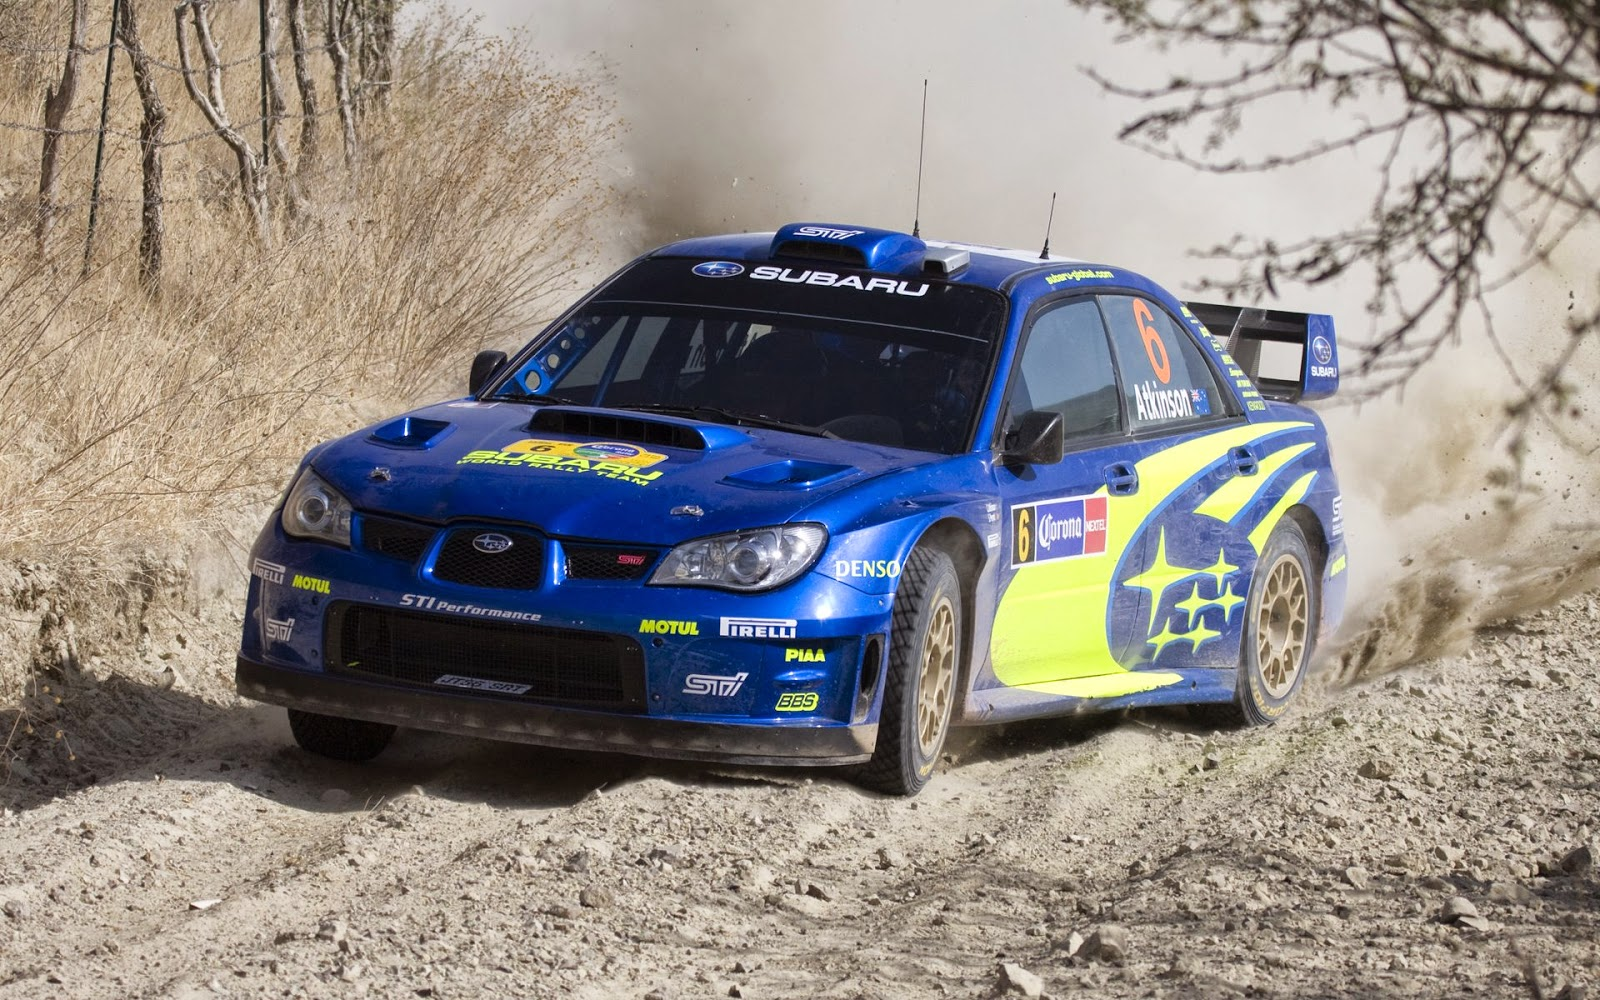 http://www.thewallpapers.org/2142/sports/wrc-rally/3